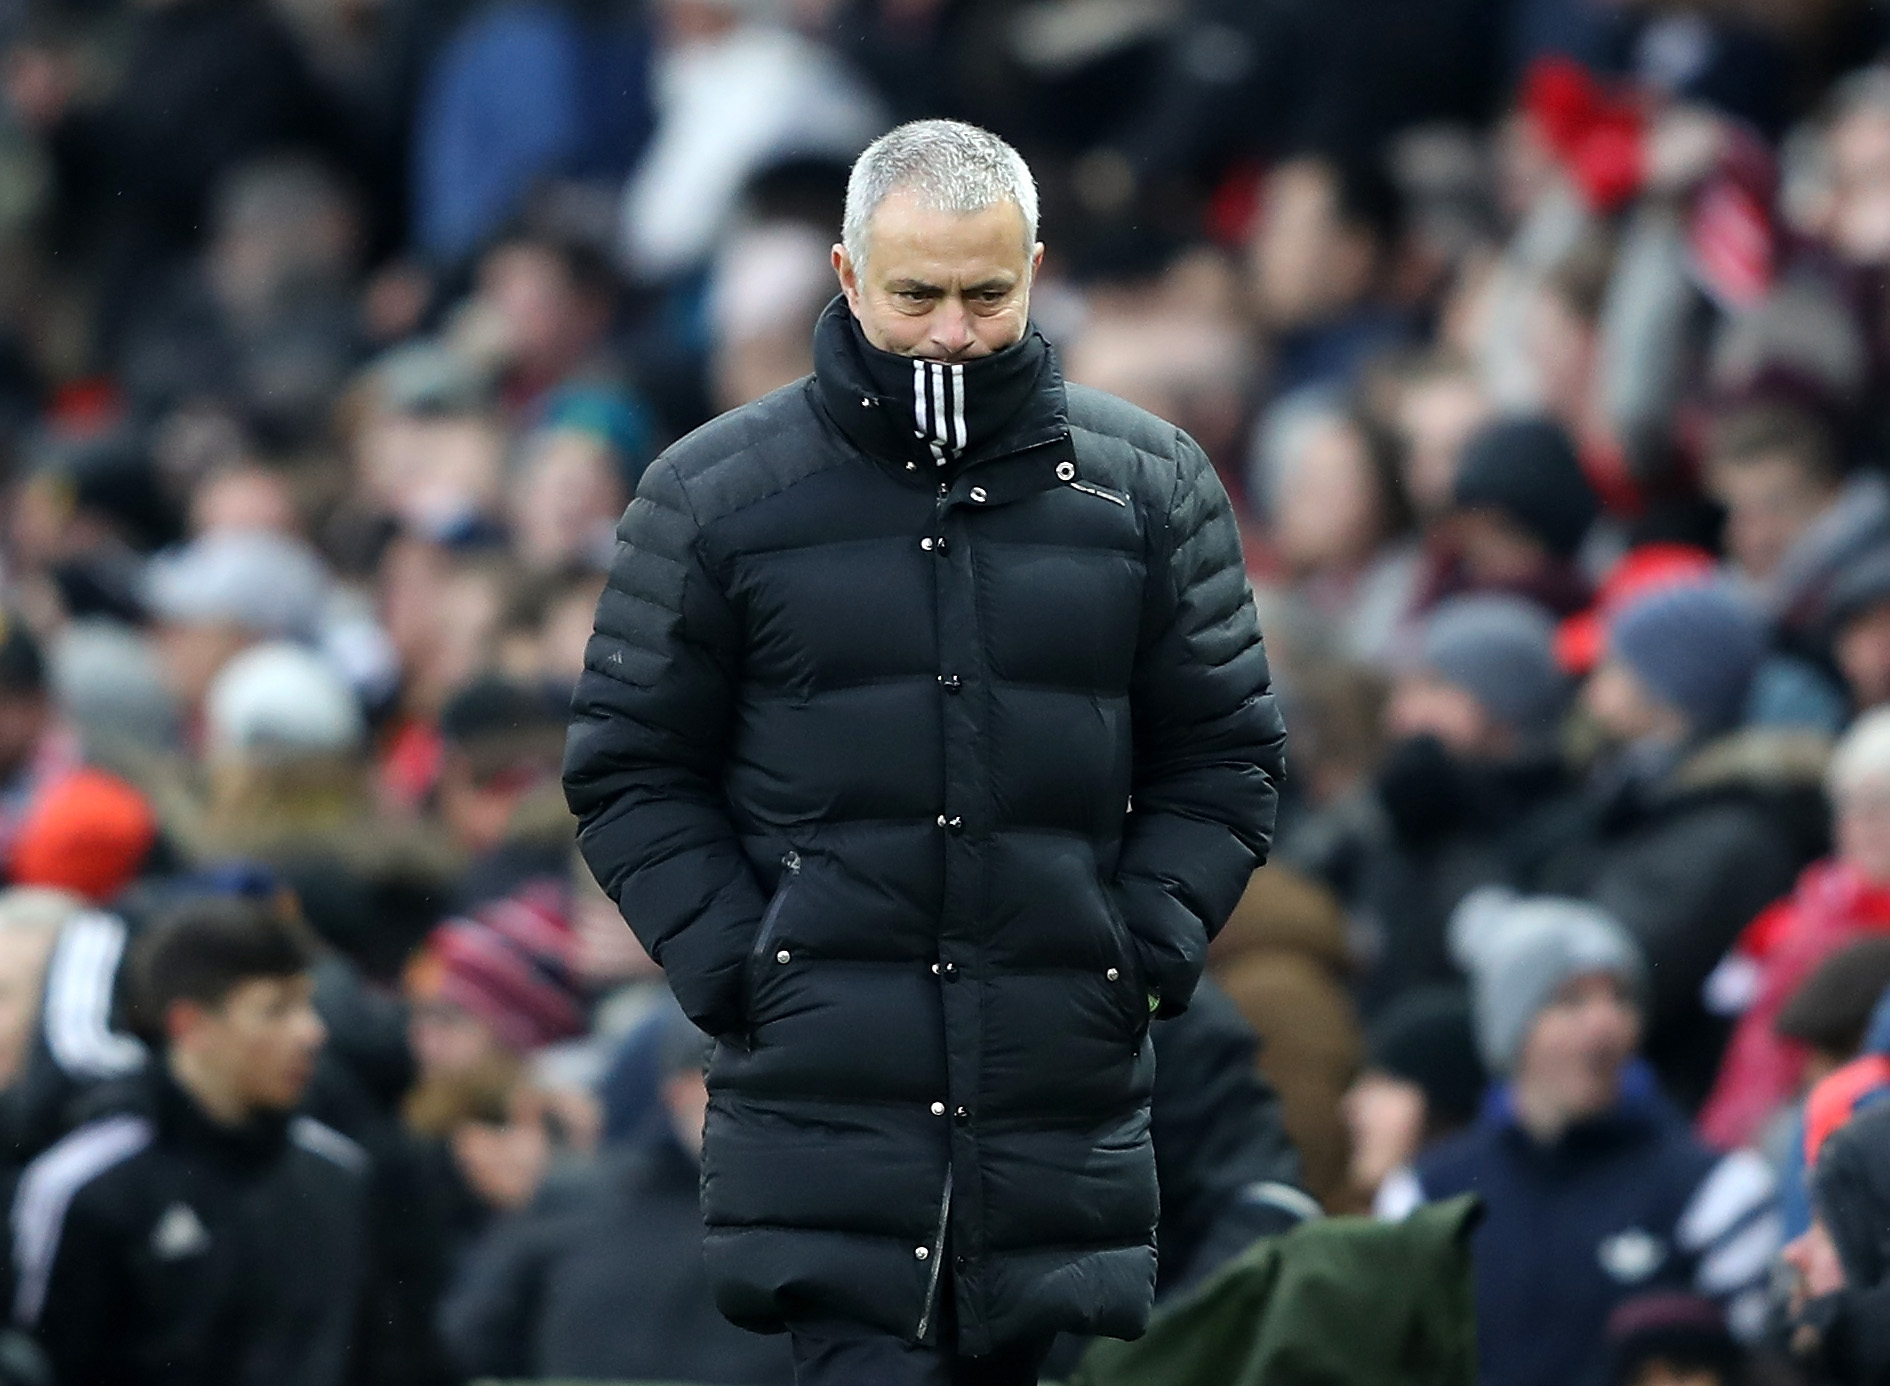 MANCHESTER, ENGLAND - FEBRUARY 11: Jose Mourinho, Manager of Manchester United looks on at the half time during the Premier League match between Manchester United and Watford at Old Trafford on February 11, 2017 in Manchester, England. (Photo by Mark Thompson/Getty Images)